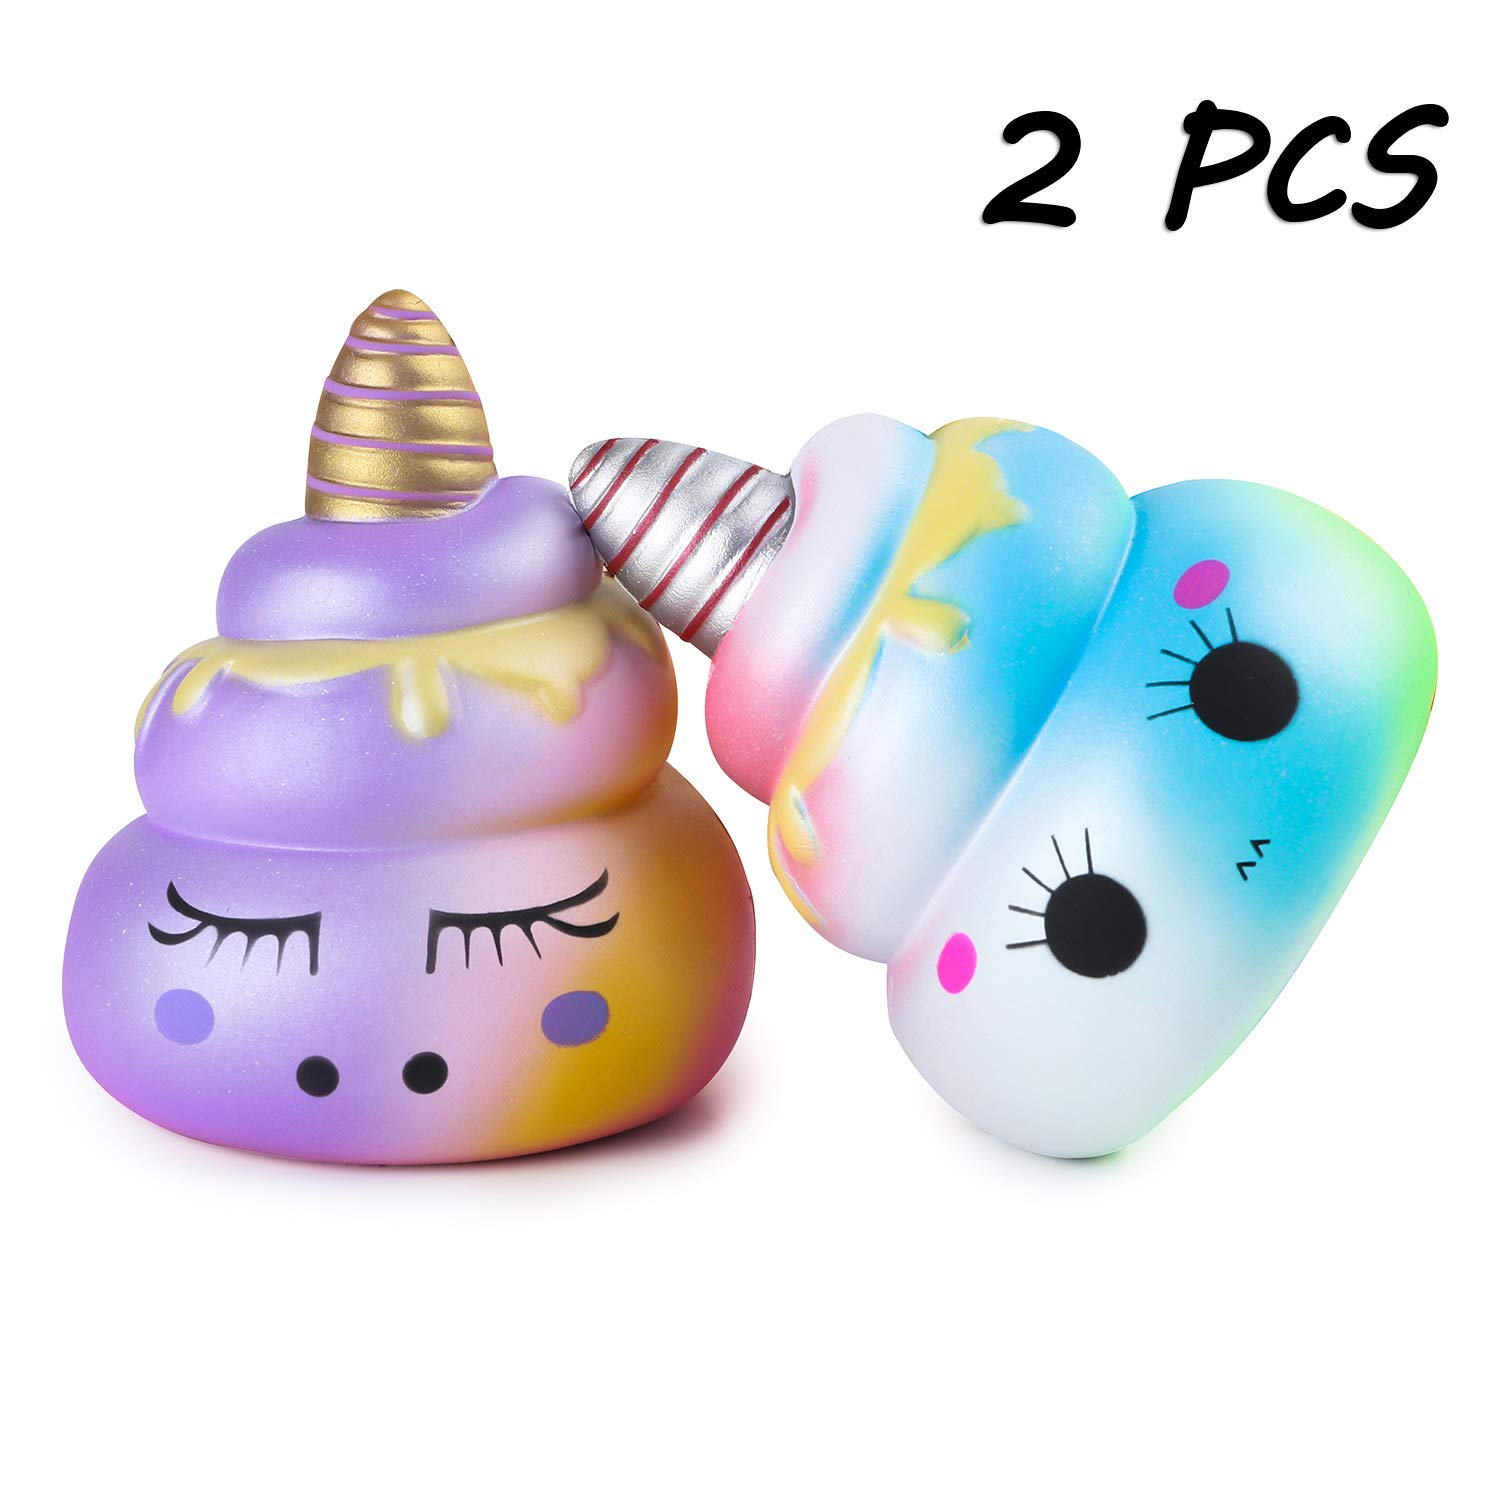 Welding & Soldering Supplies Squeeze Cute Snail Slow Rising Squeeze Cream Scented Decompression Toys Stress Relief Toys Kids Adult Toy Stress Reliever Decor